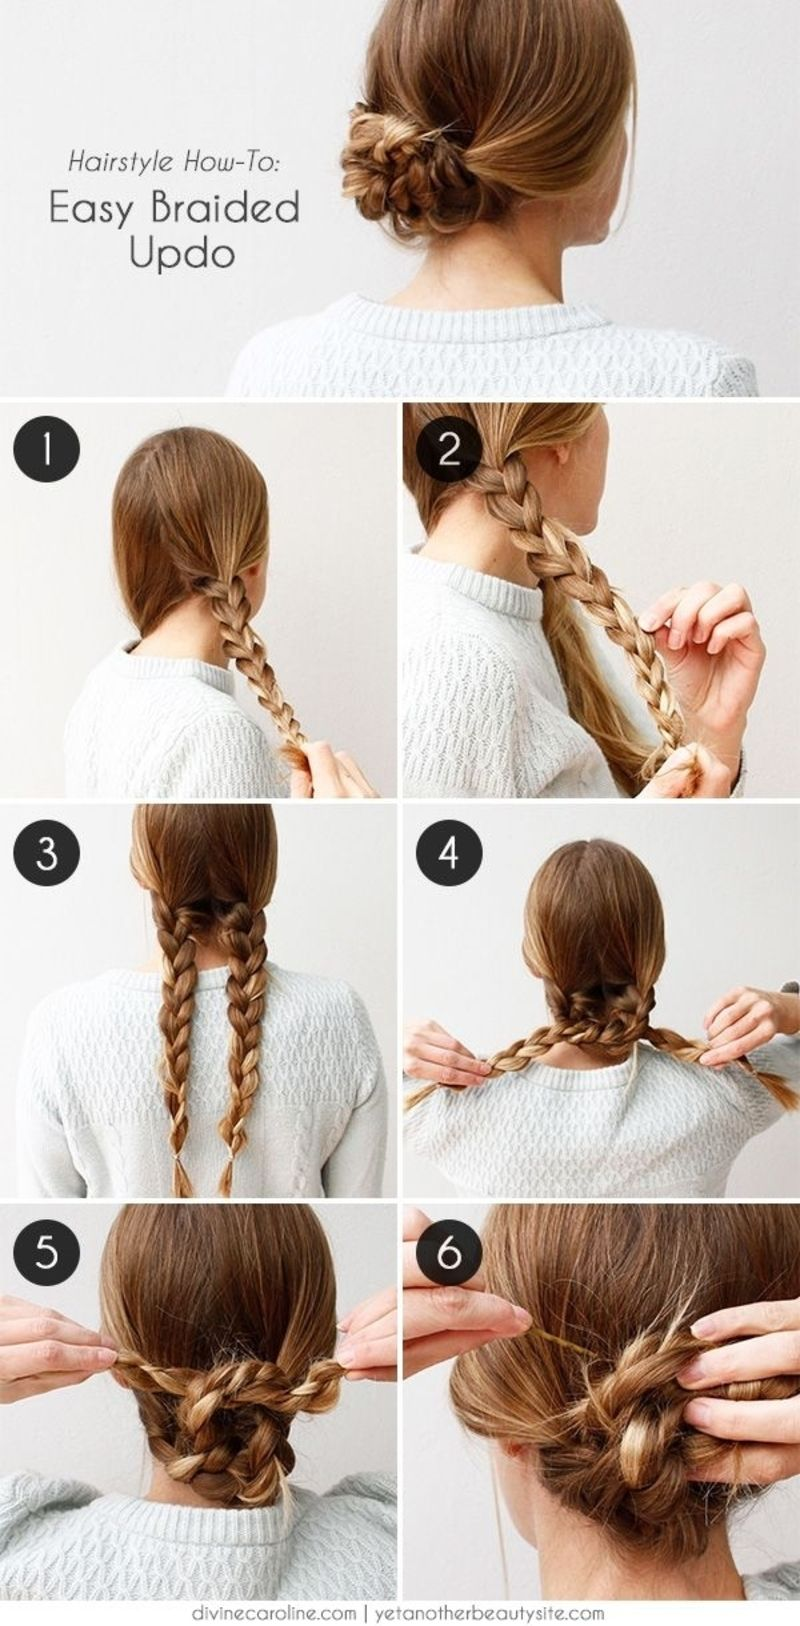 Easy Braided Hairstyle For Any Occasion Hair Styles Braided Hairstyles Easy Medium Long Hair